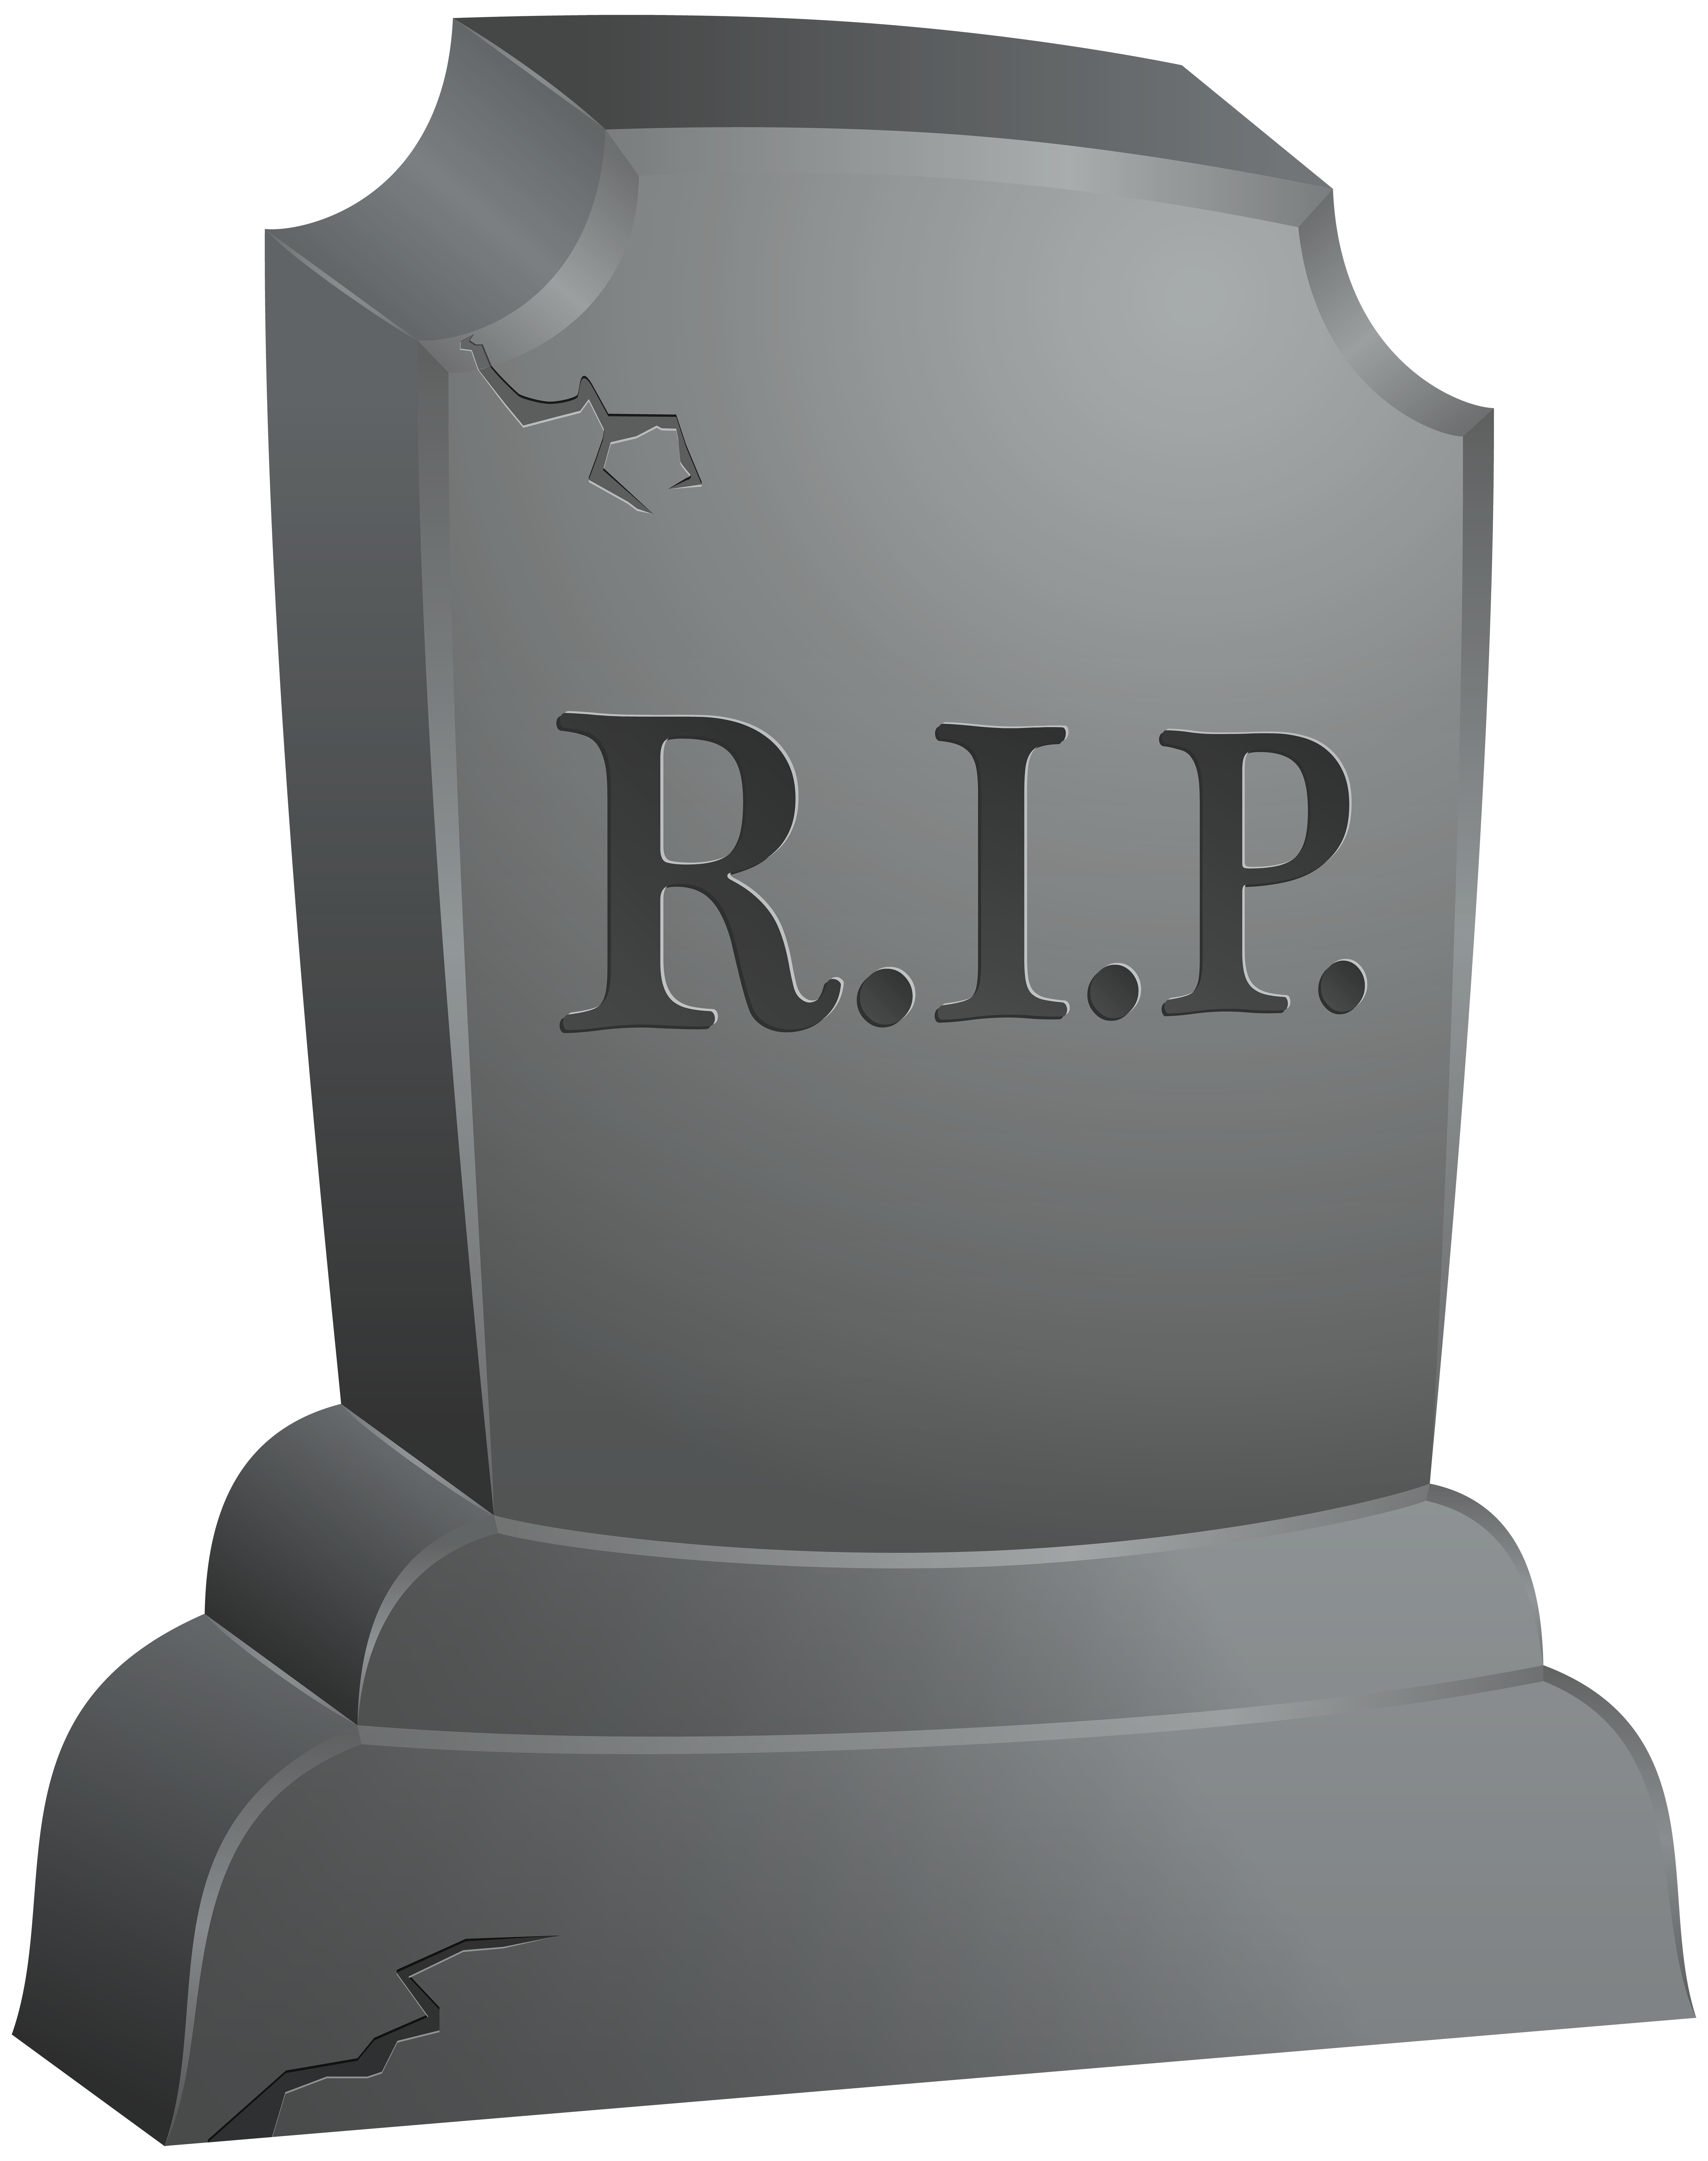 Png rip. Halloween r i p